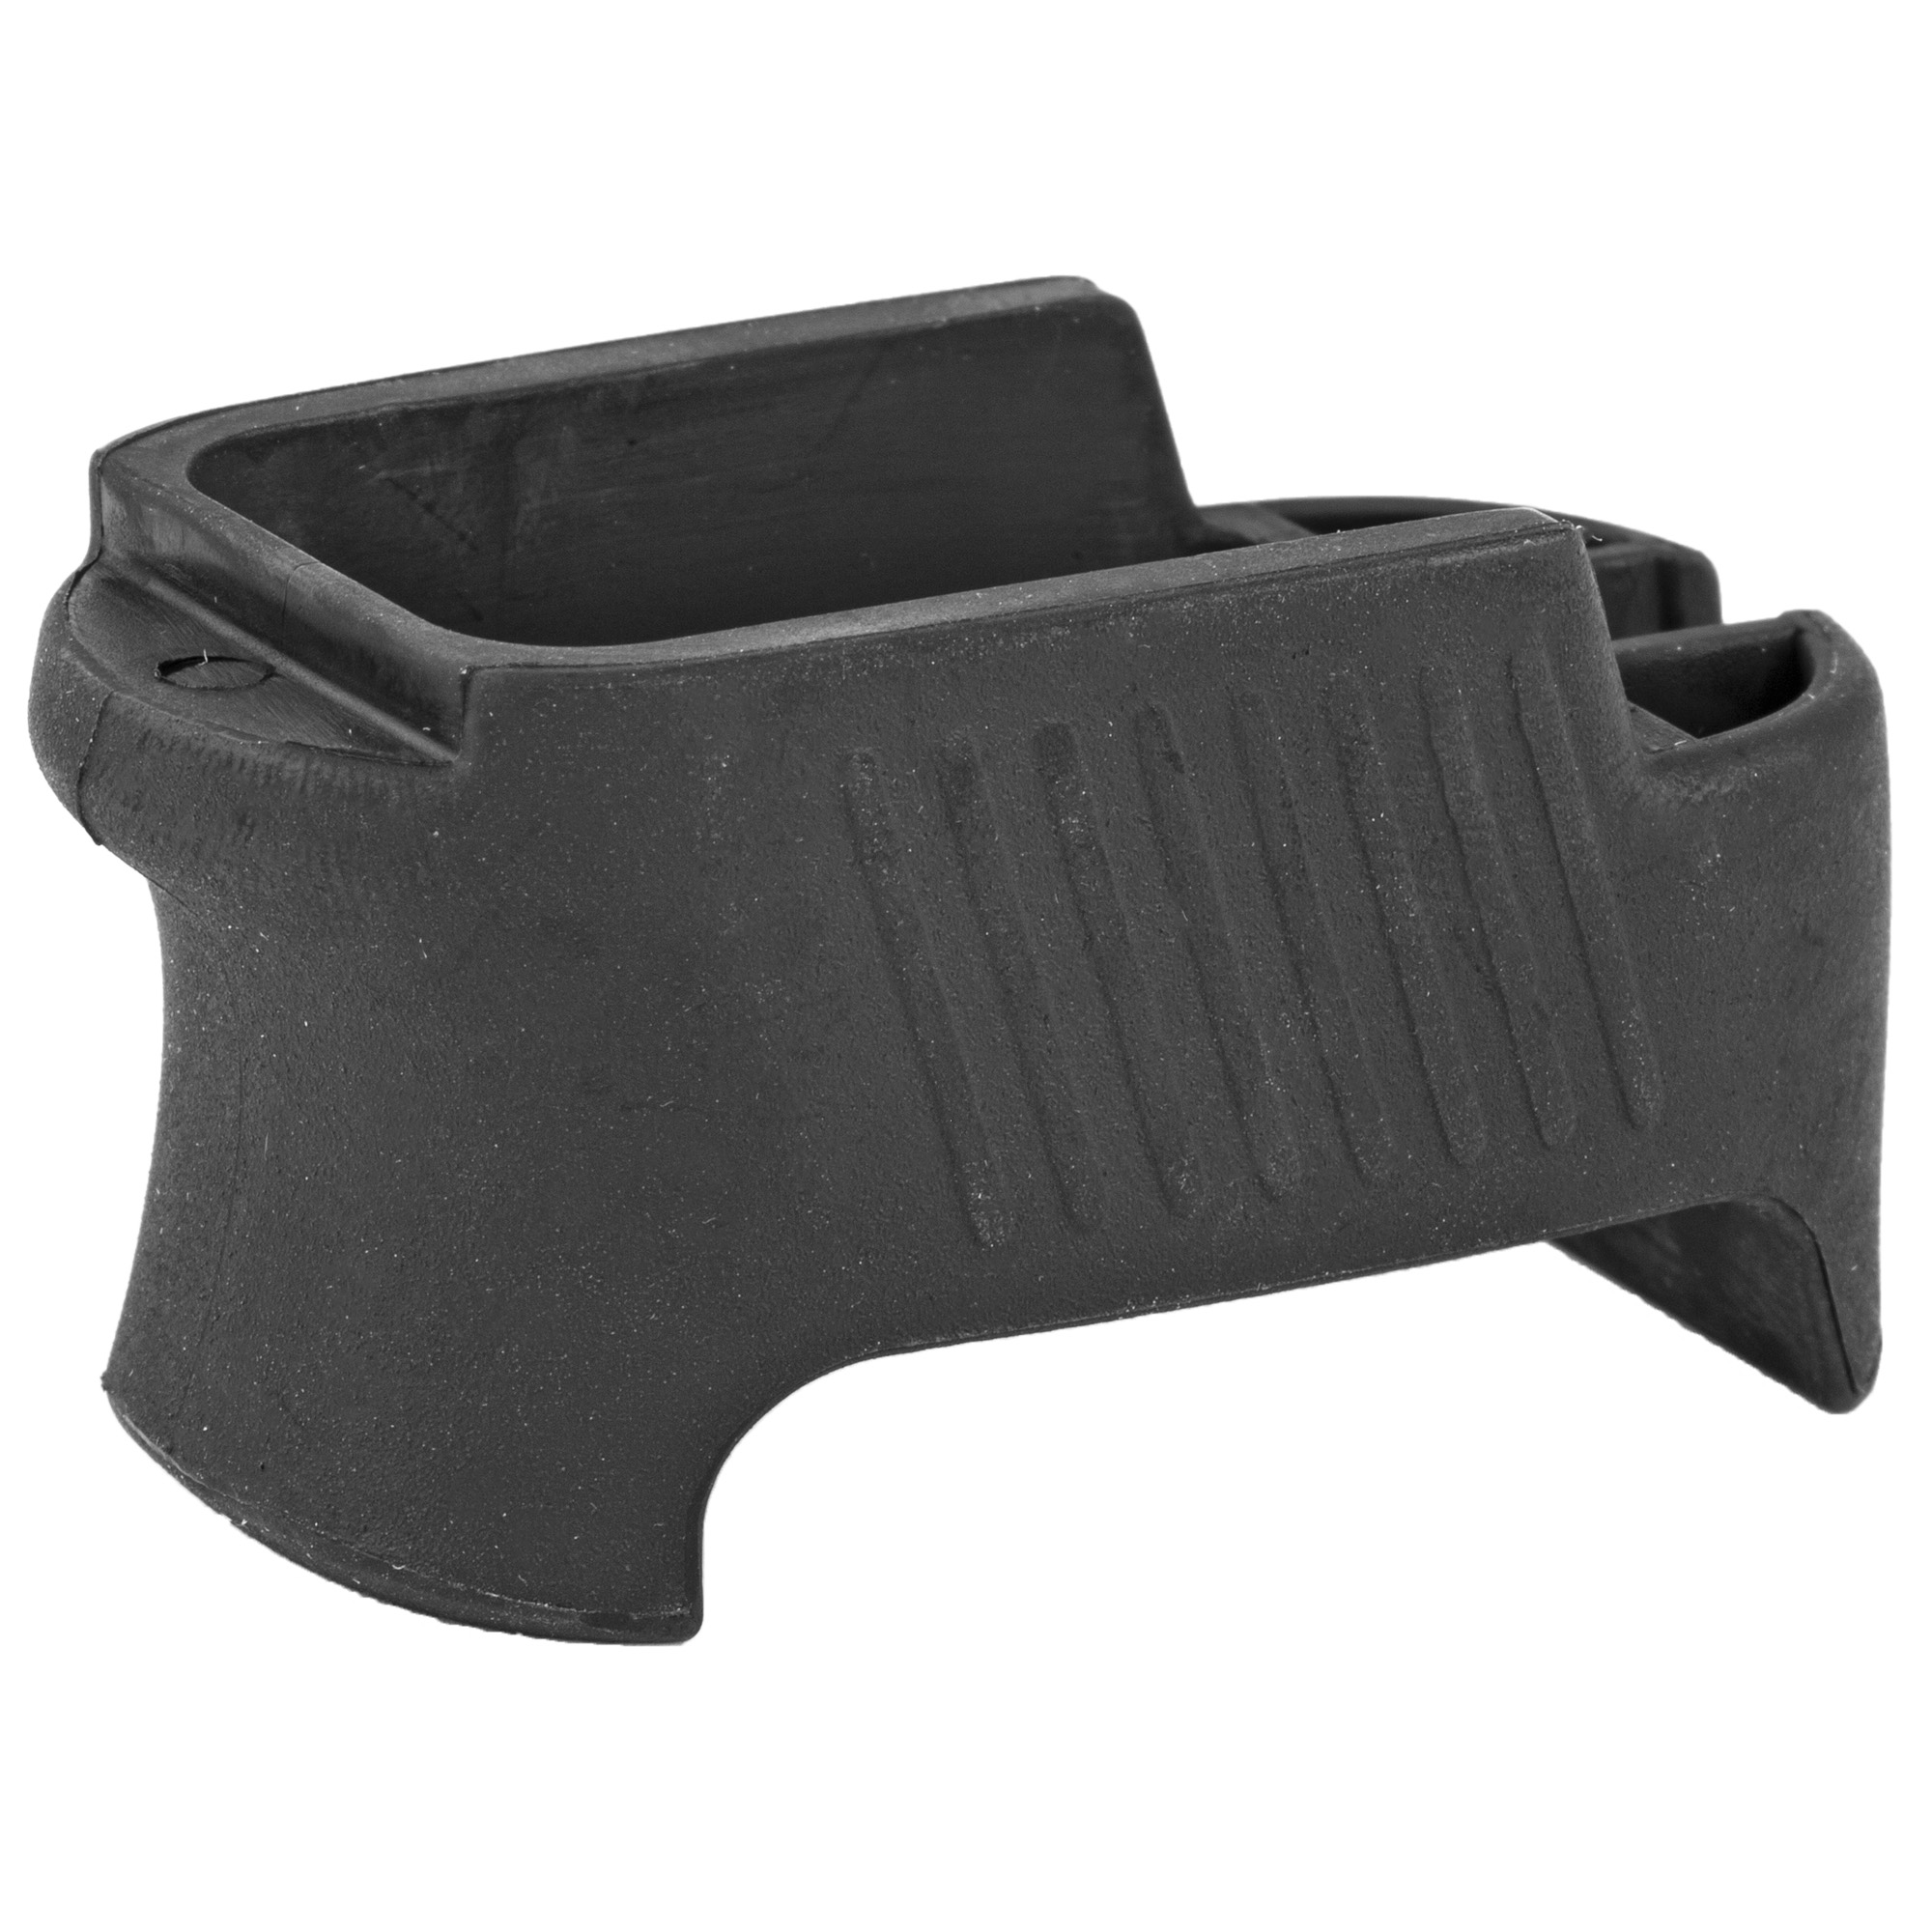 """This XGRIP adapts the HK P30 high capacity magazine for use in the P2000SK"""" incorporating the larger magazine into the P2000SK's grip and increasing the gun's capacity to 15 rounds in 9mm and 13 rounds in 40 cal."""